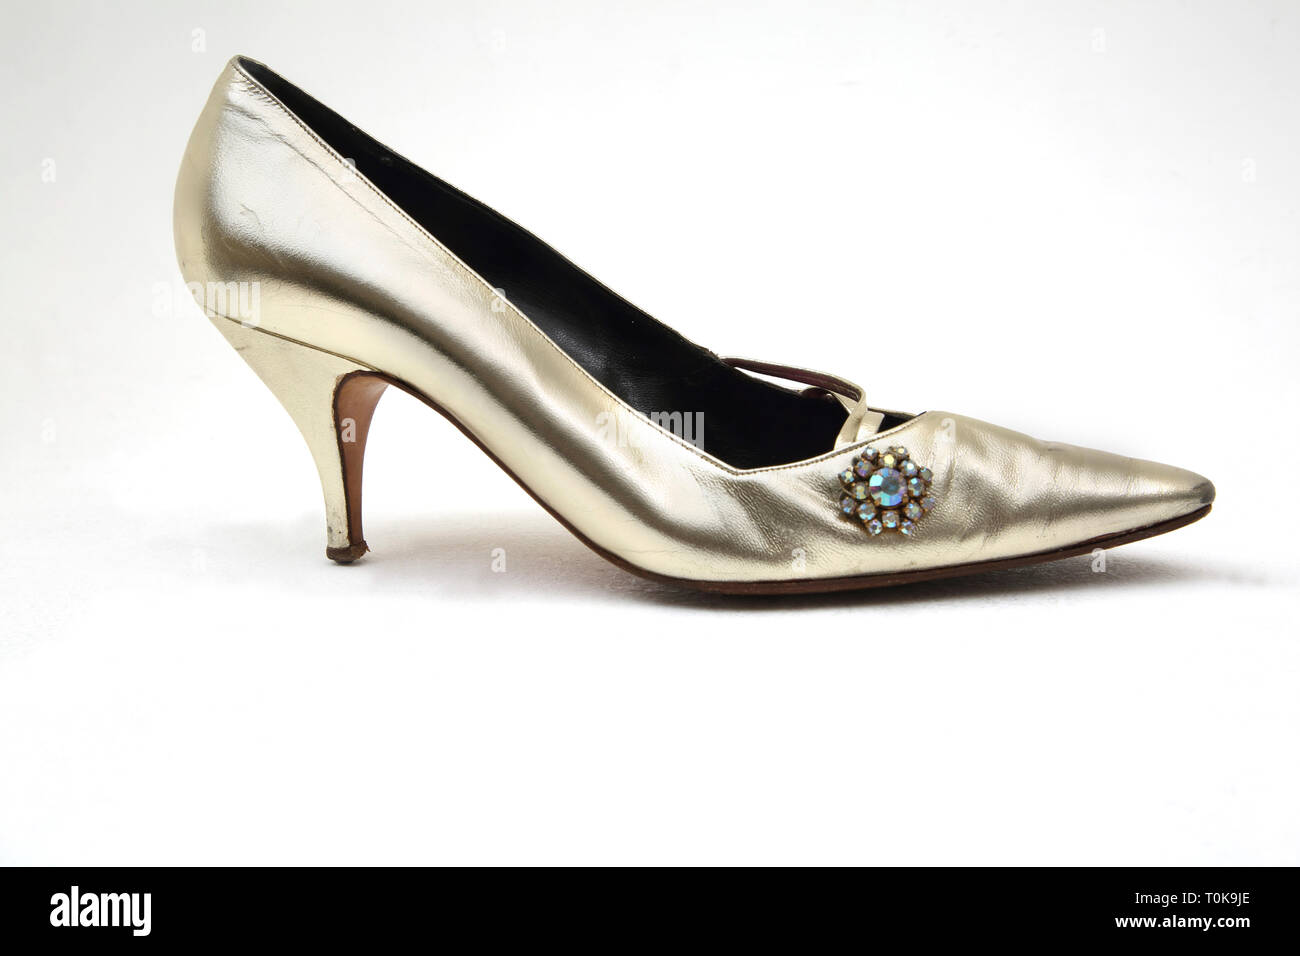 Gold Kitten Heel Shoe with Costume Jewel on the Side - Stock Image